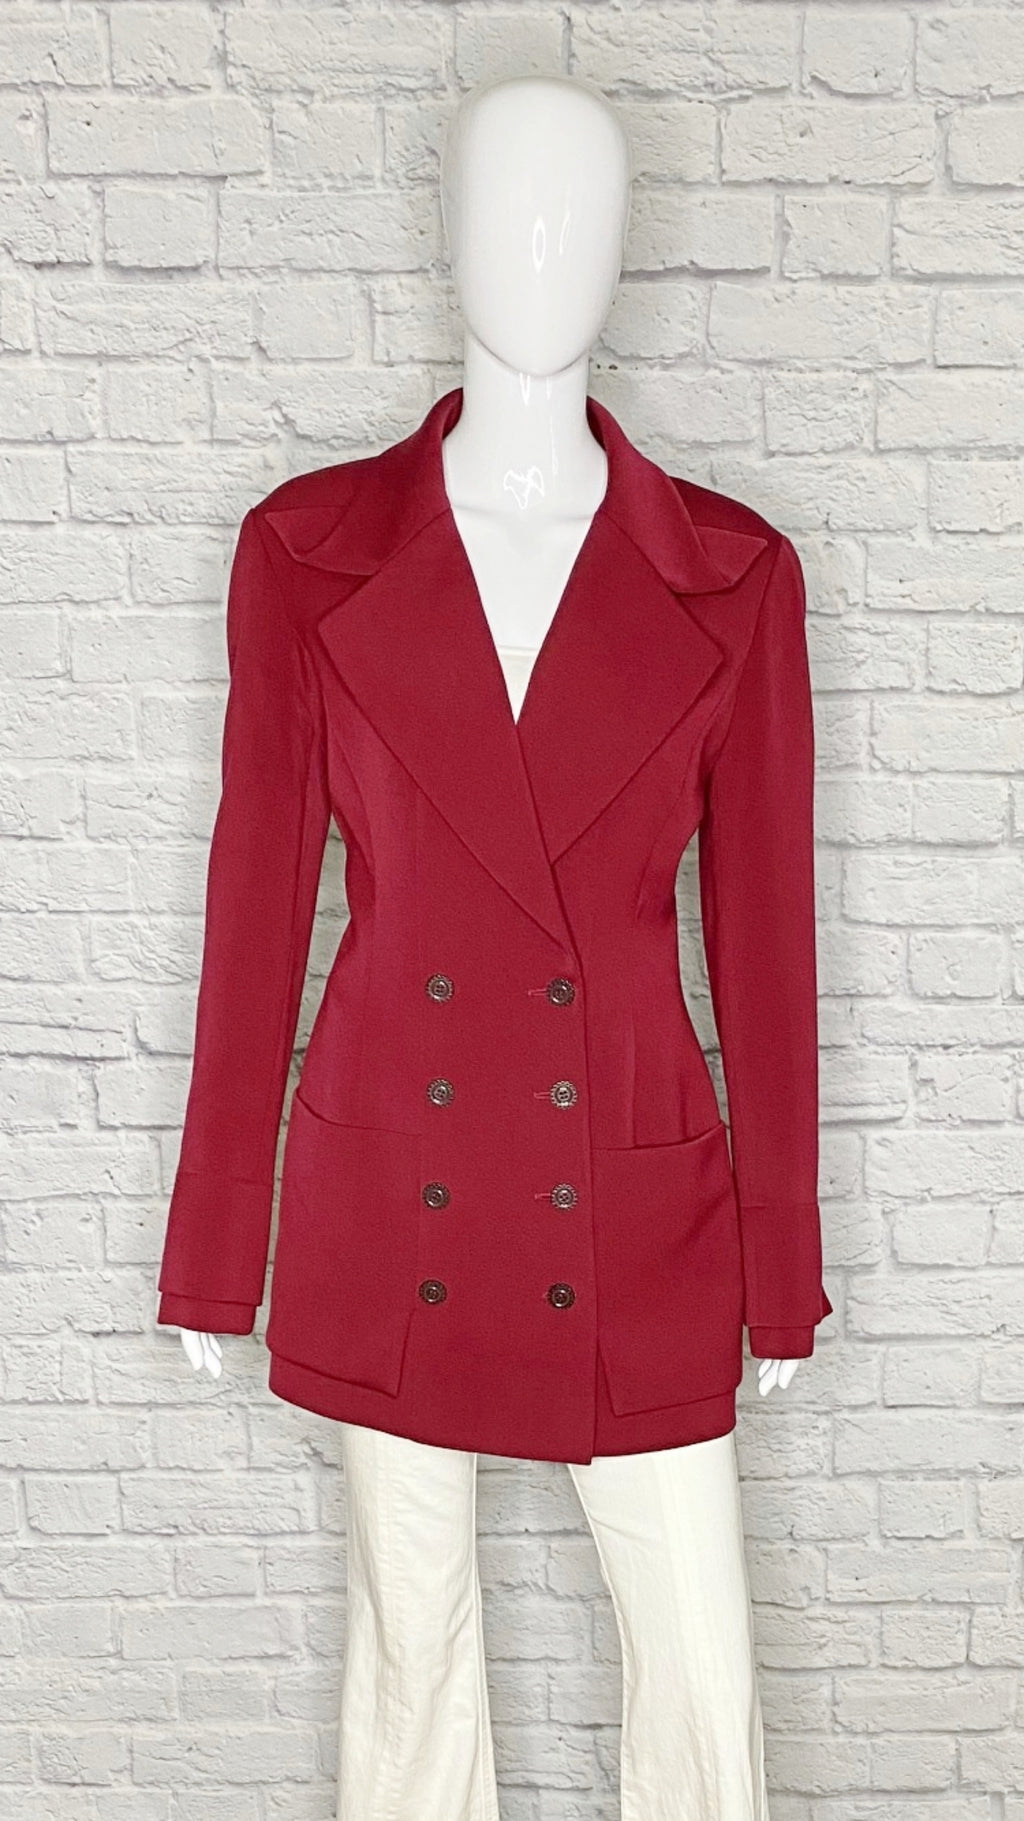 Karl Lagerfeld (of Chanel) 80s Vintage Wool Burgundy Blazer